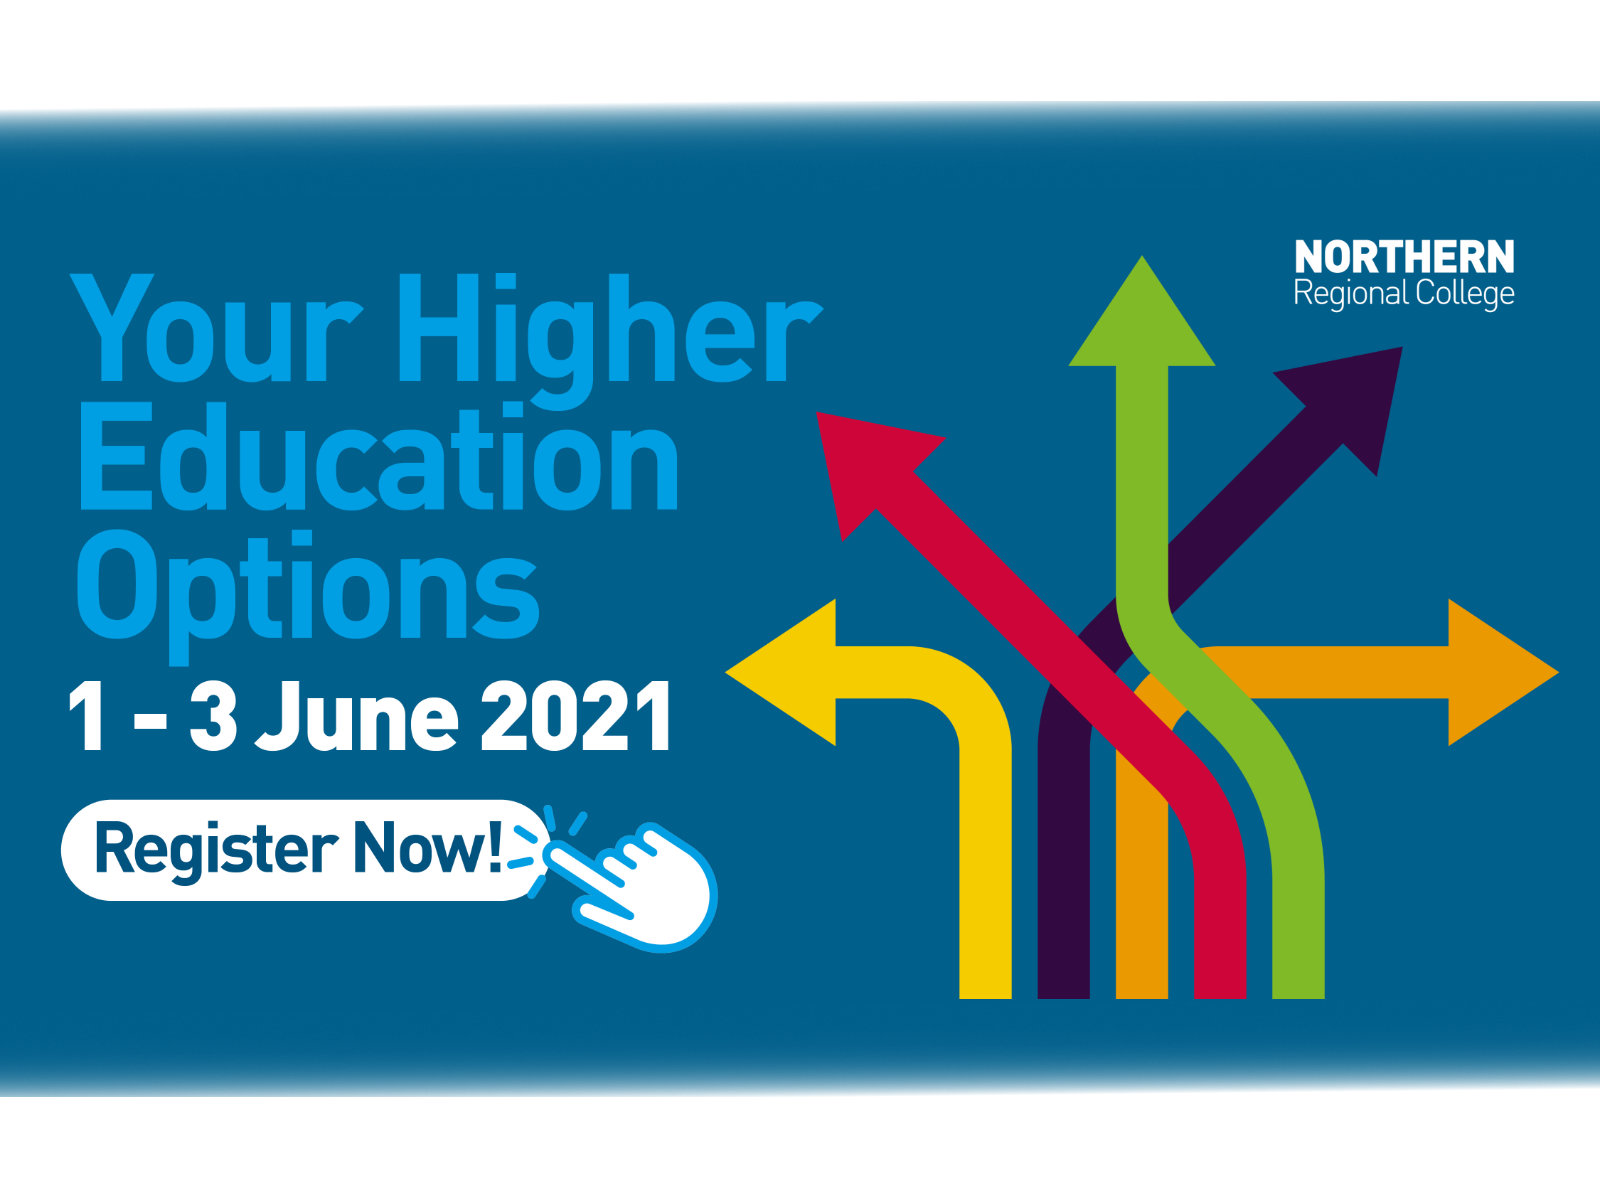 Your Higher Education options, 1-3 June 2021, register now!